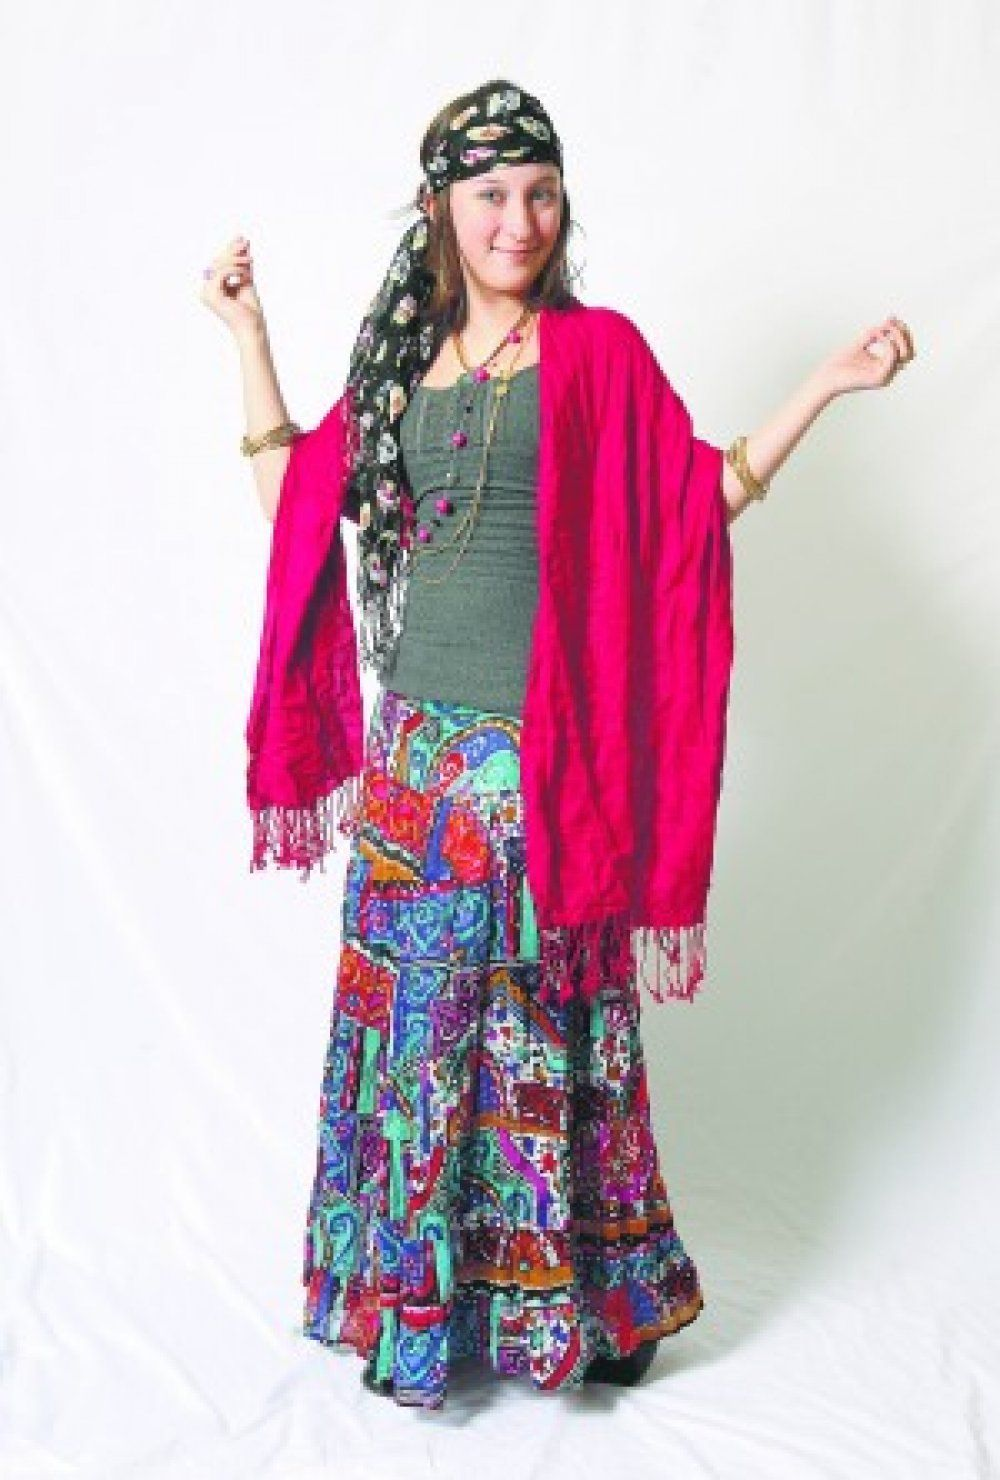 Homemade gypsy costumes google search renaissance pinterest heres a diy homemade gypsy costume solutioingenieria Choice Image